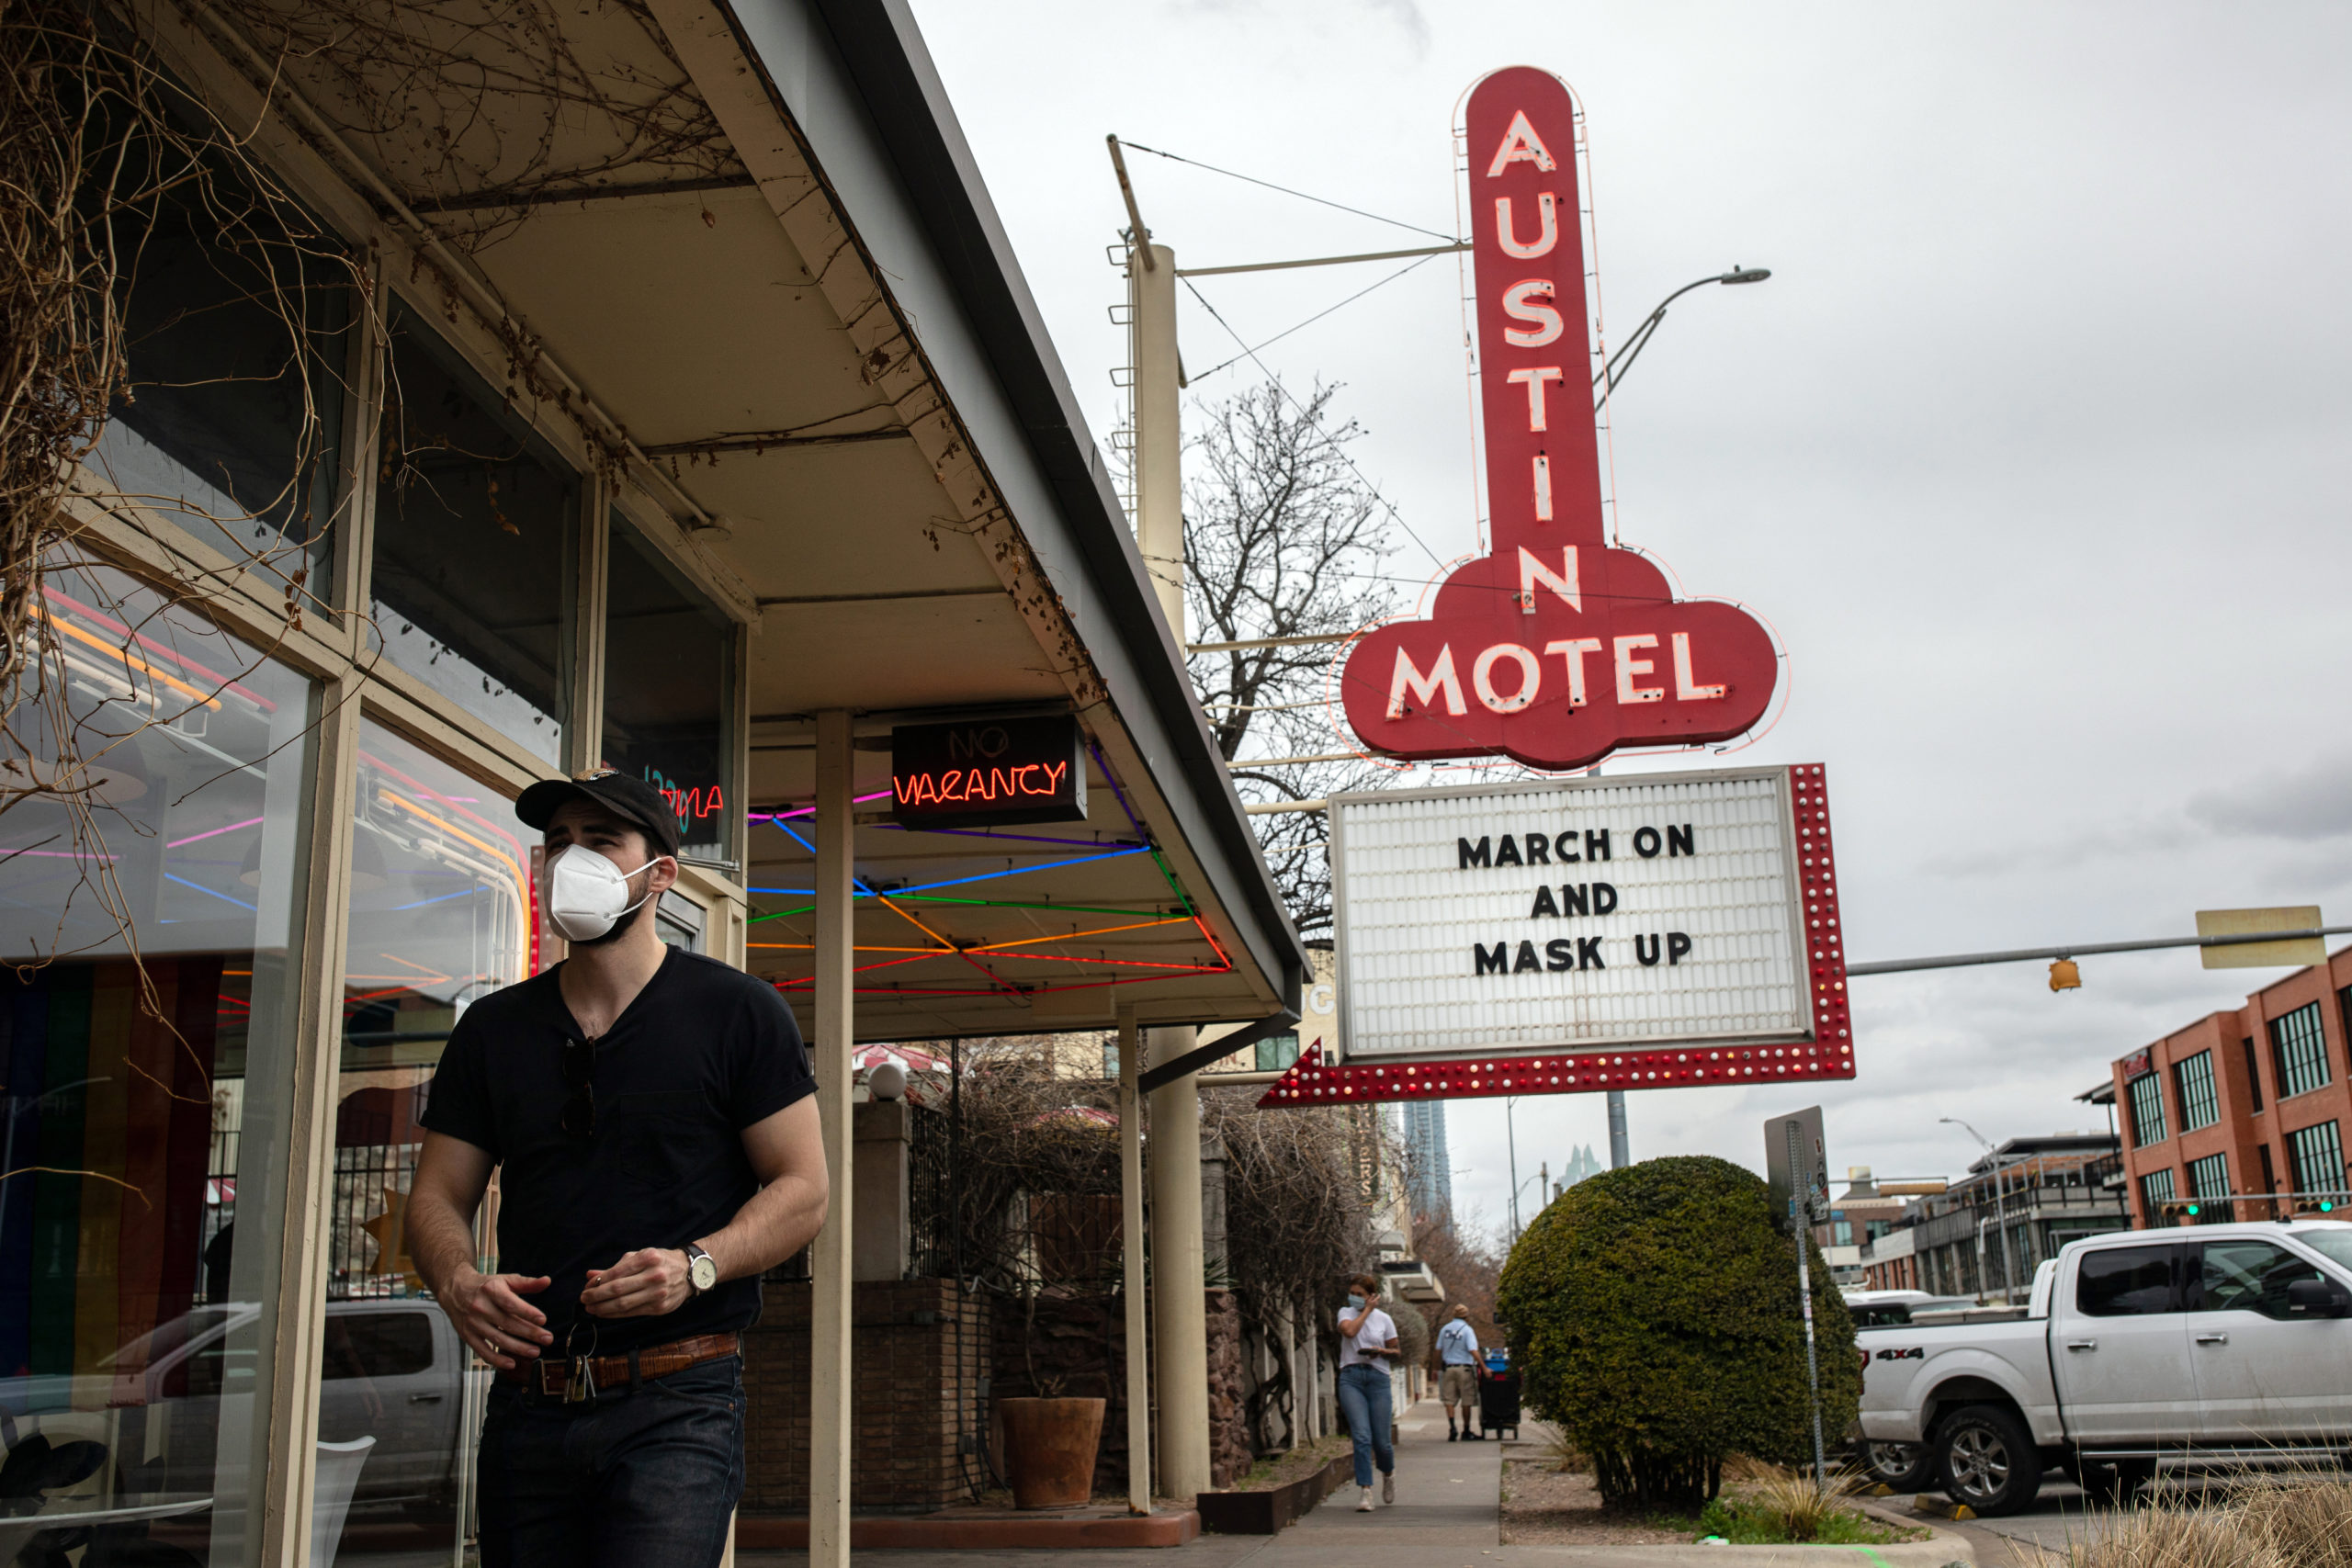 AUSTIN, TX - MARCH 10: The Austin Motel displays a message on their marquee encouraging people to wear masks on March 10, 2021 in Austin, Texas. The City of Austin said it will continue to maintain its mask rules despite an executive order from Gov. Greg Abbott, which took effect Wednesday, that lifted the statewide mask mandate and allowed businesses to fully reopen. (Photo by Tamir Kalifa/Getty Images)